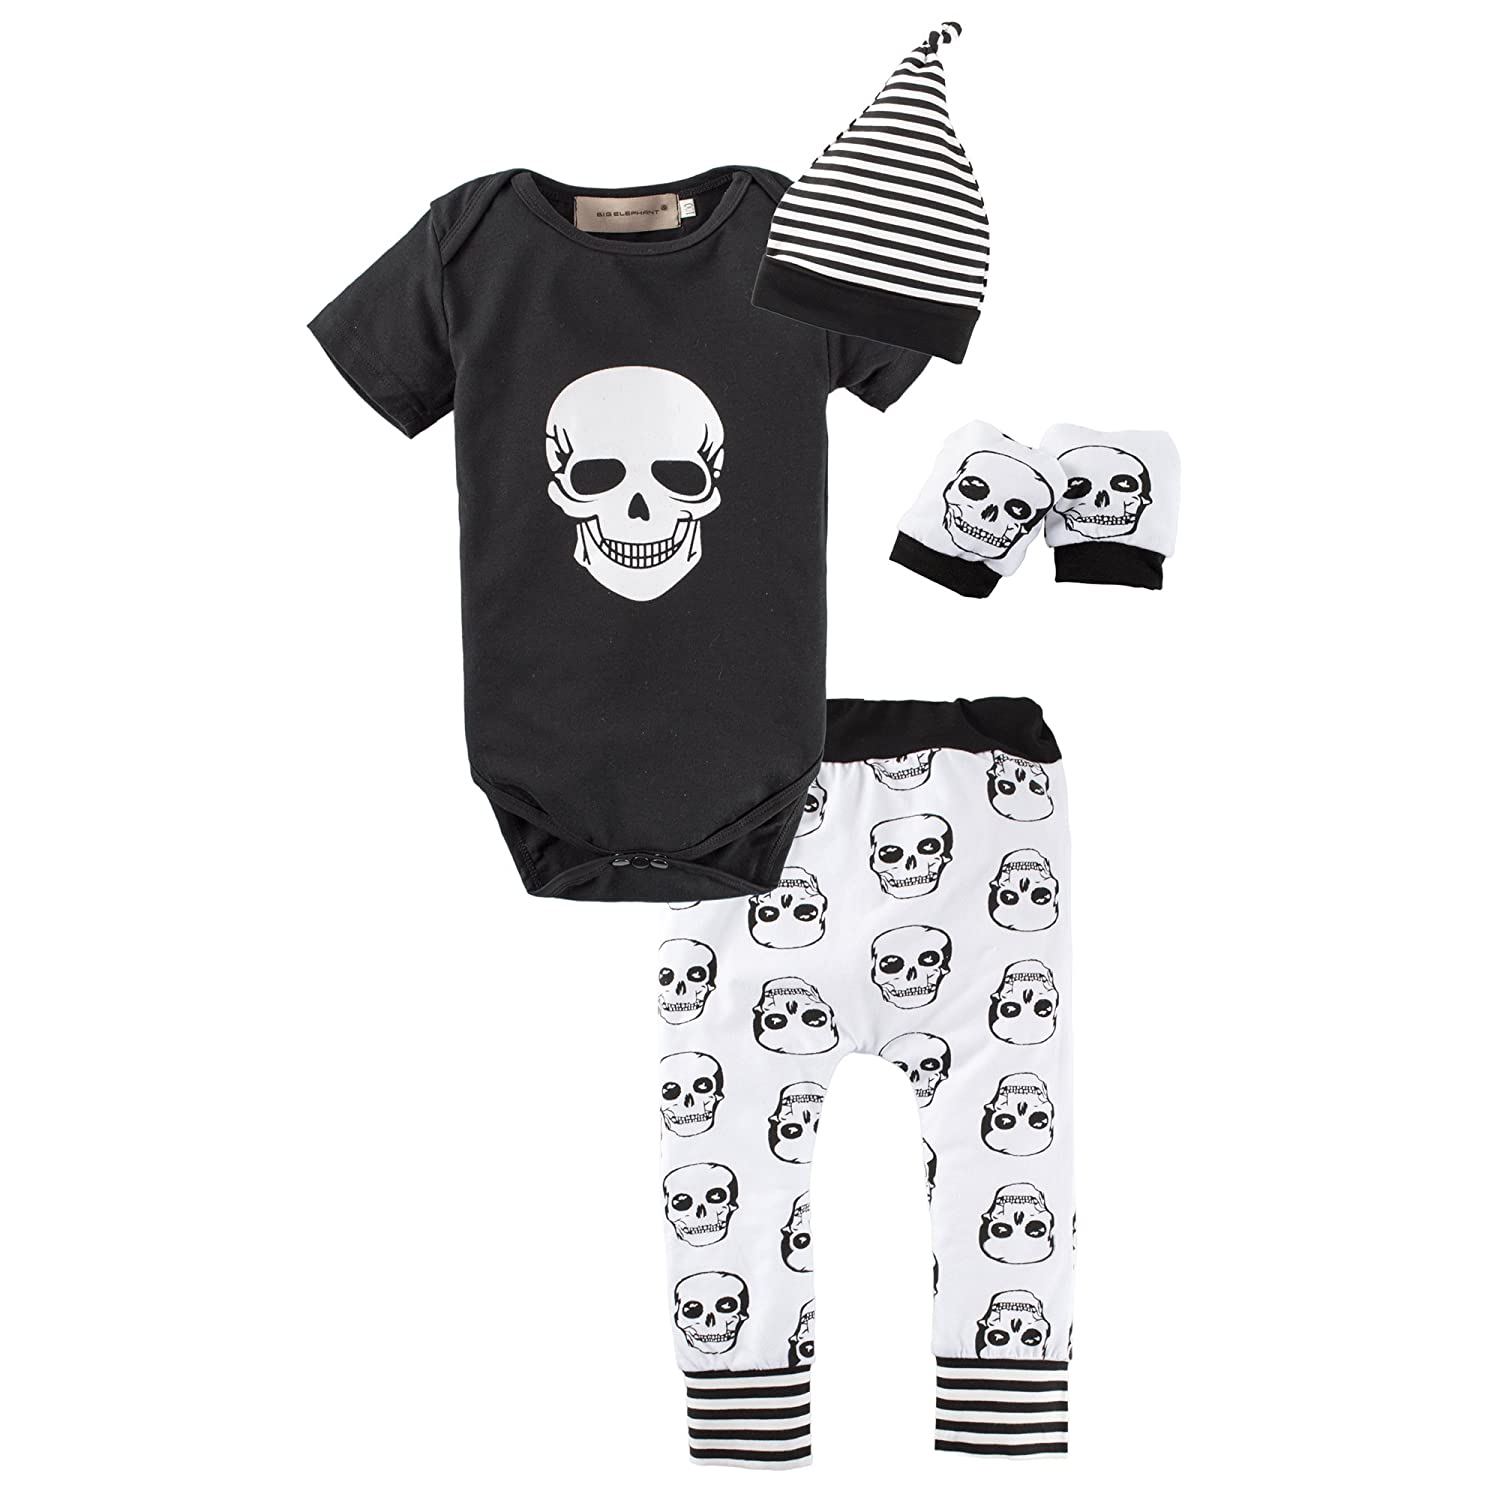 BIG ELEPHANT Halloween Baby Boys'4 Pieces Skull Head Short Sleeve Romper Pant Clothing Set with Hat L16